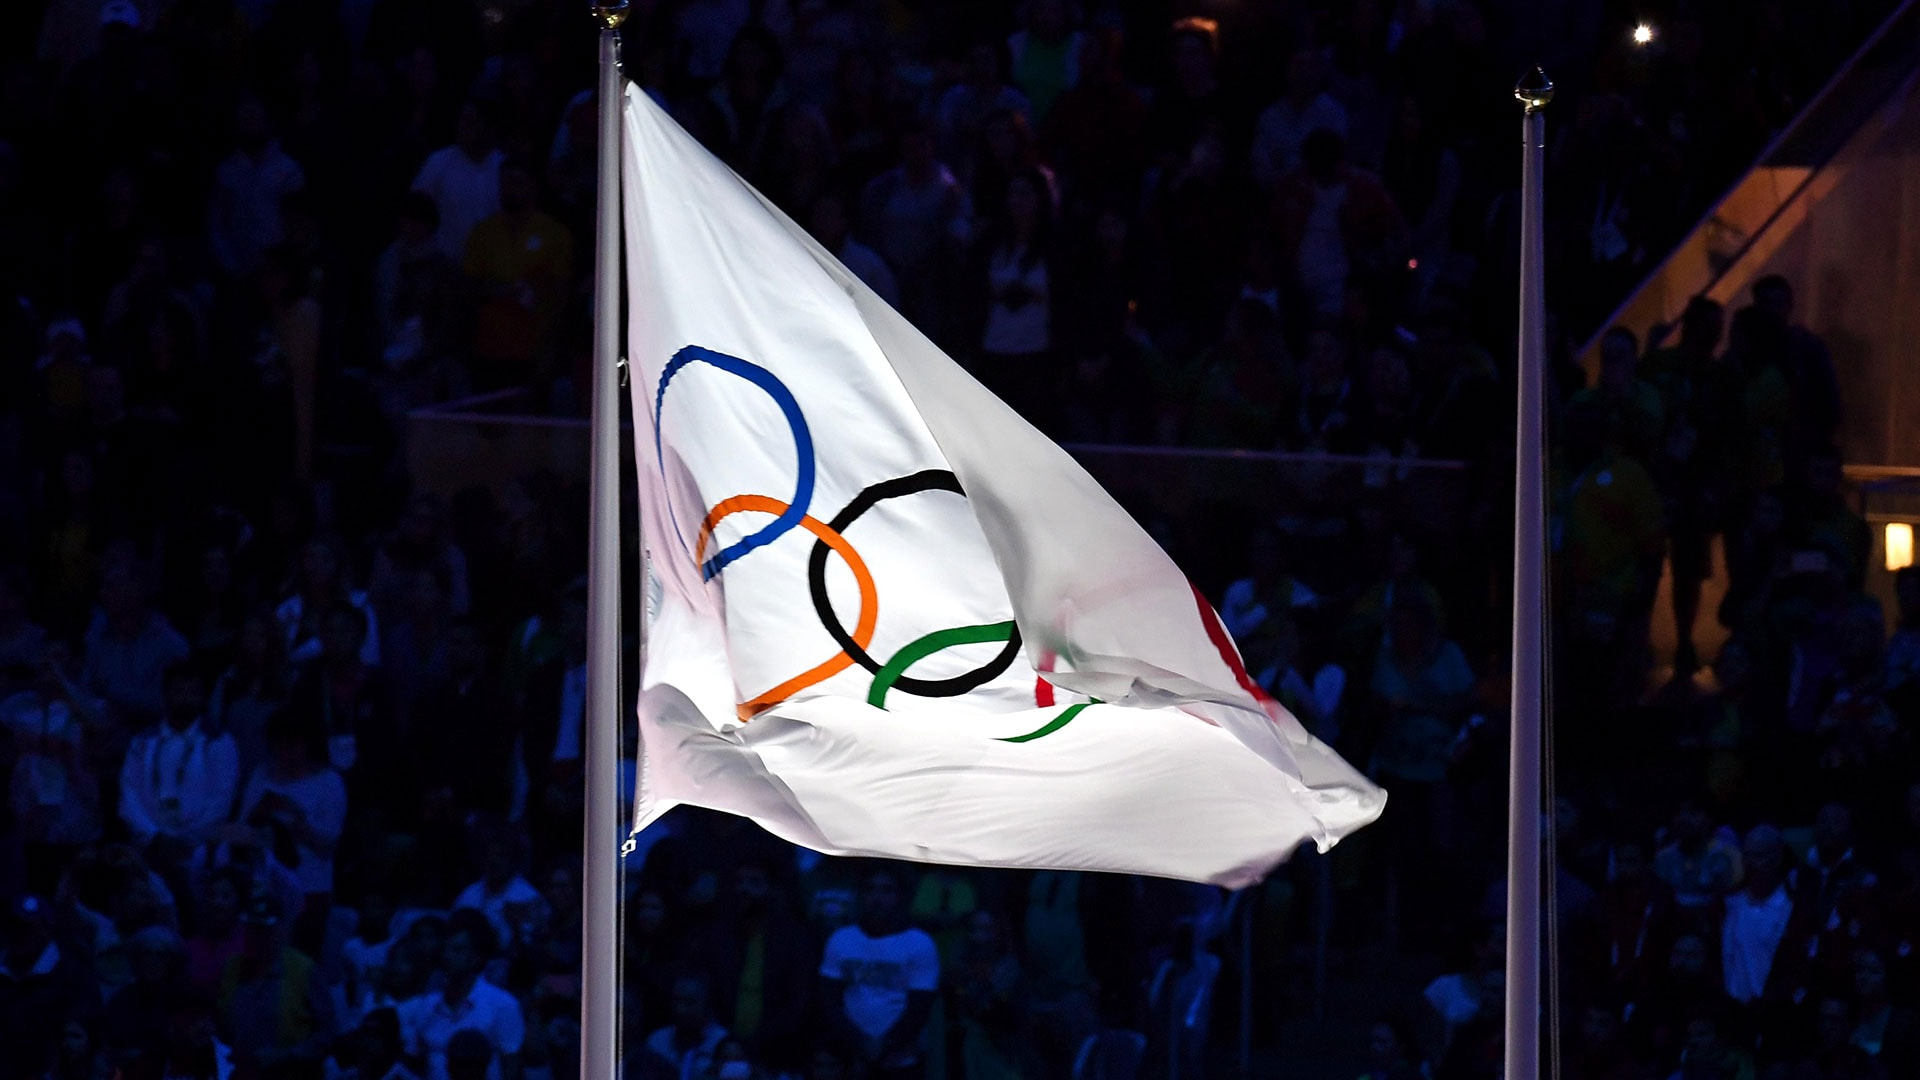 Image for 'Faster, Higher, Stronger - Together': IOC unveils updated Olympic motto